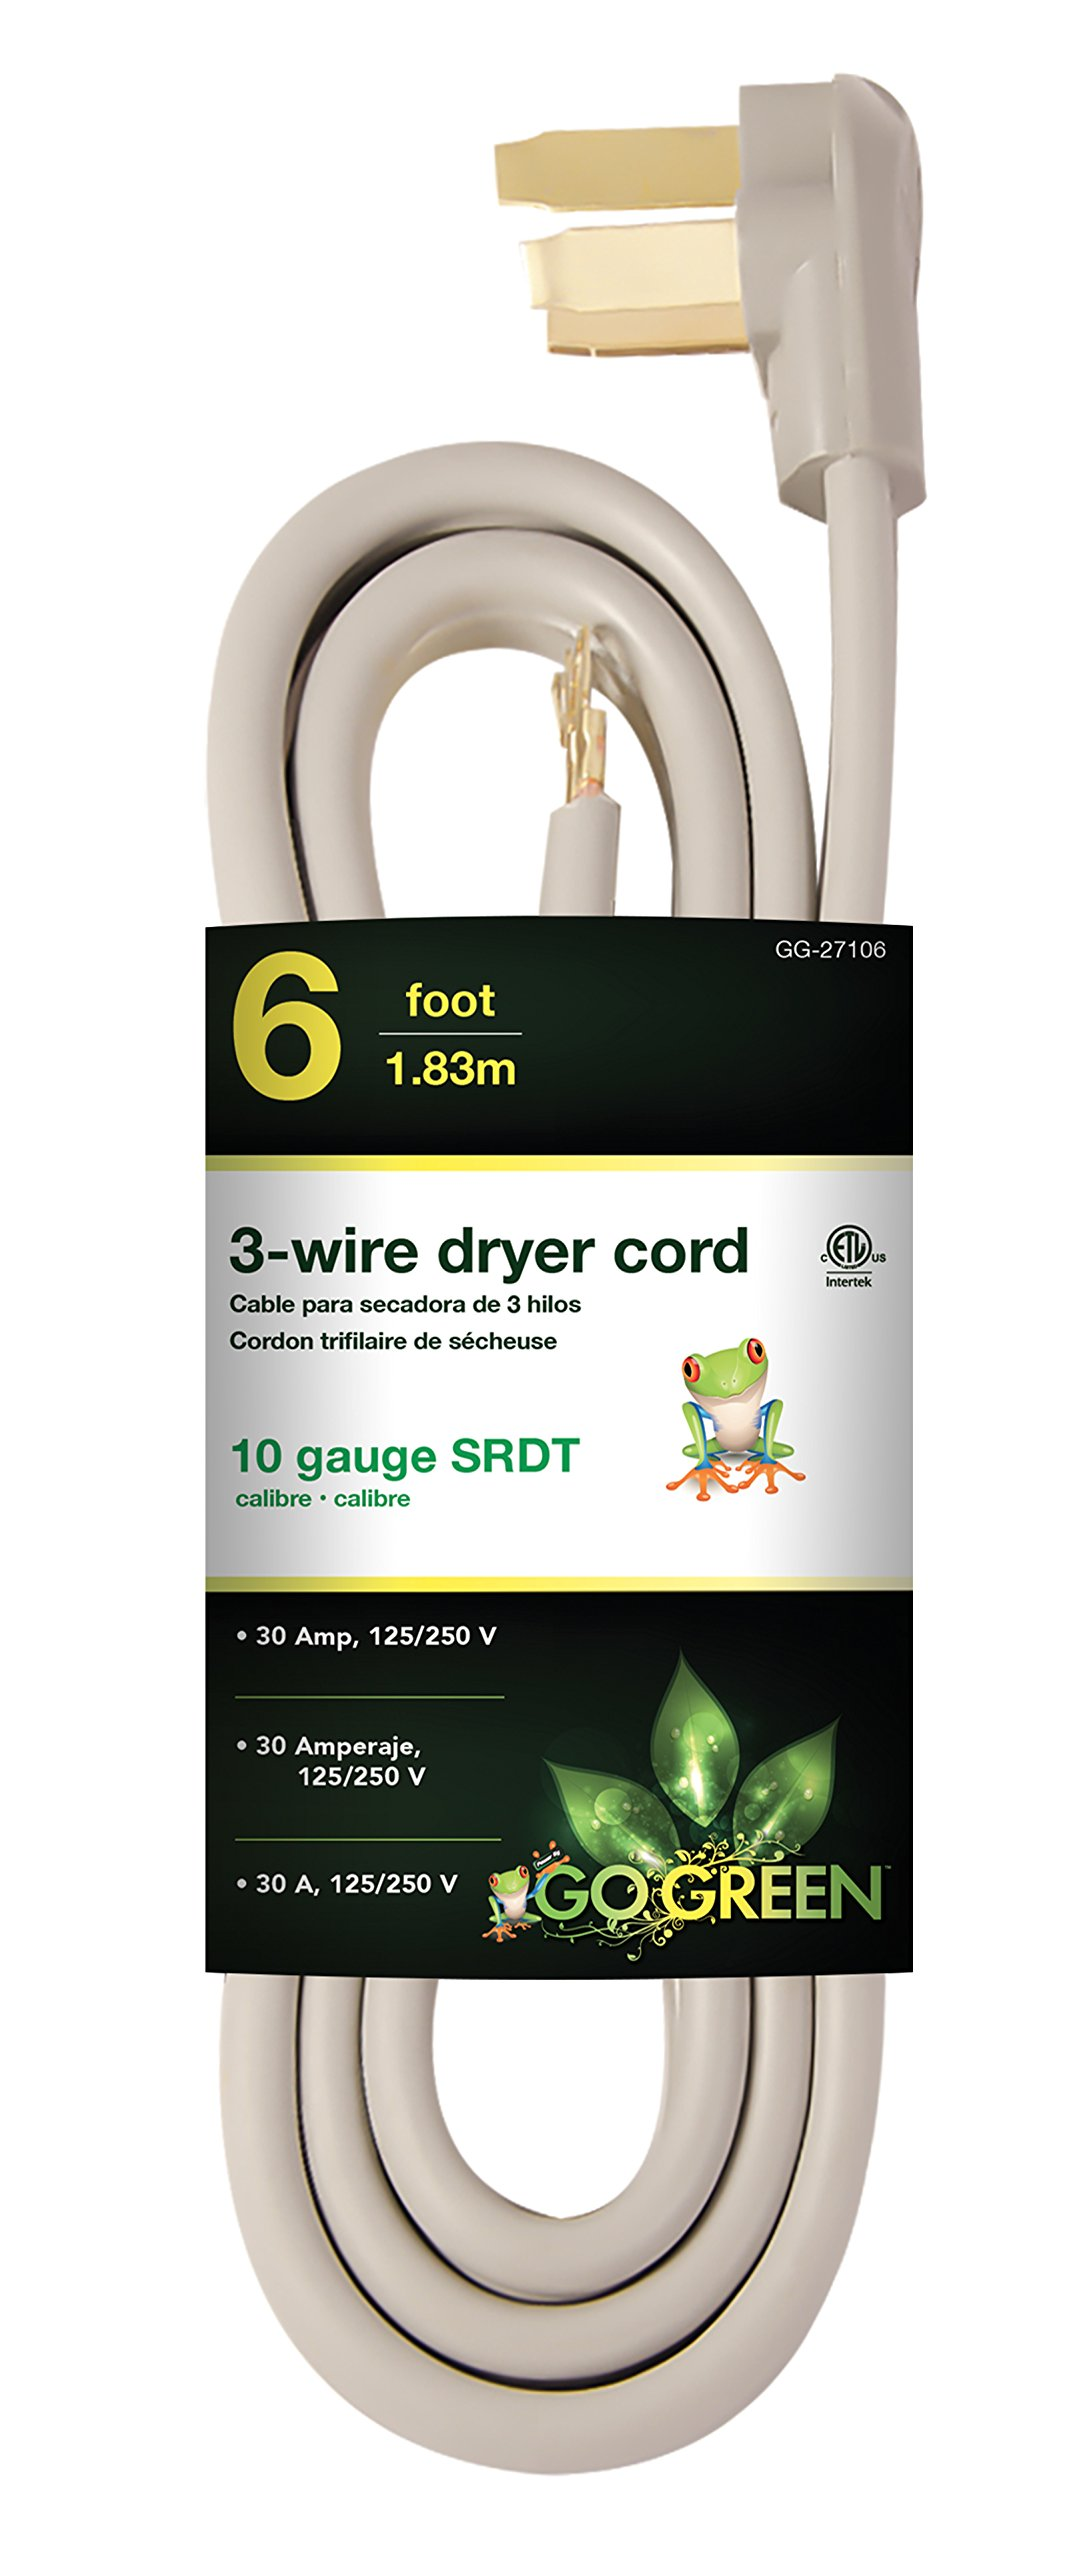 GoGreen Power GG-27106 6' 3 Wire Dryer Cord, 30 Amp